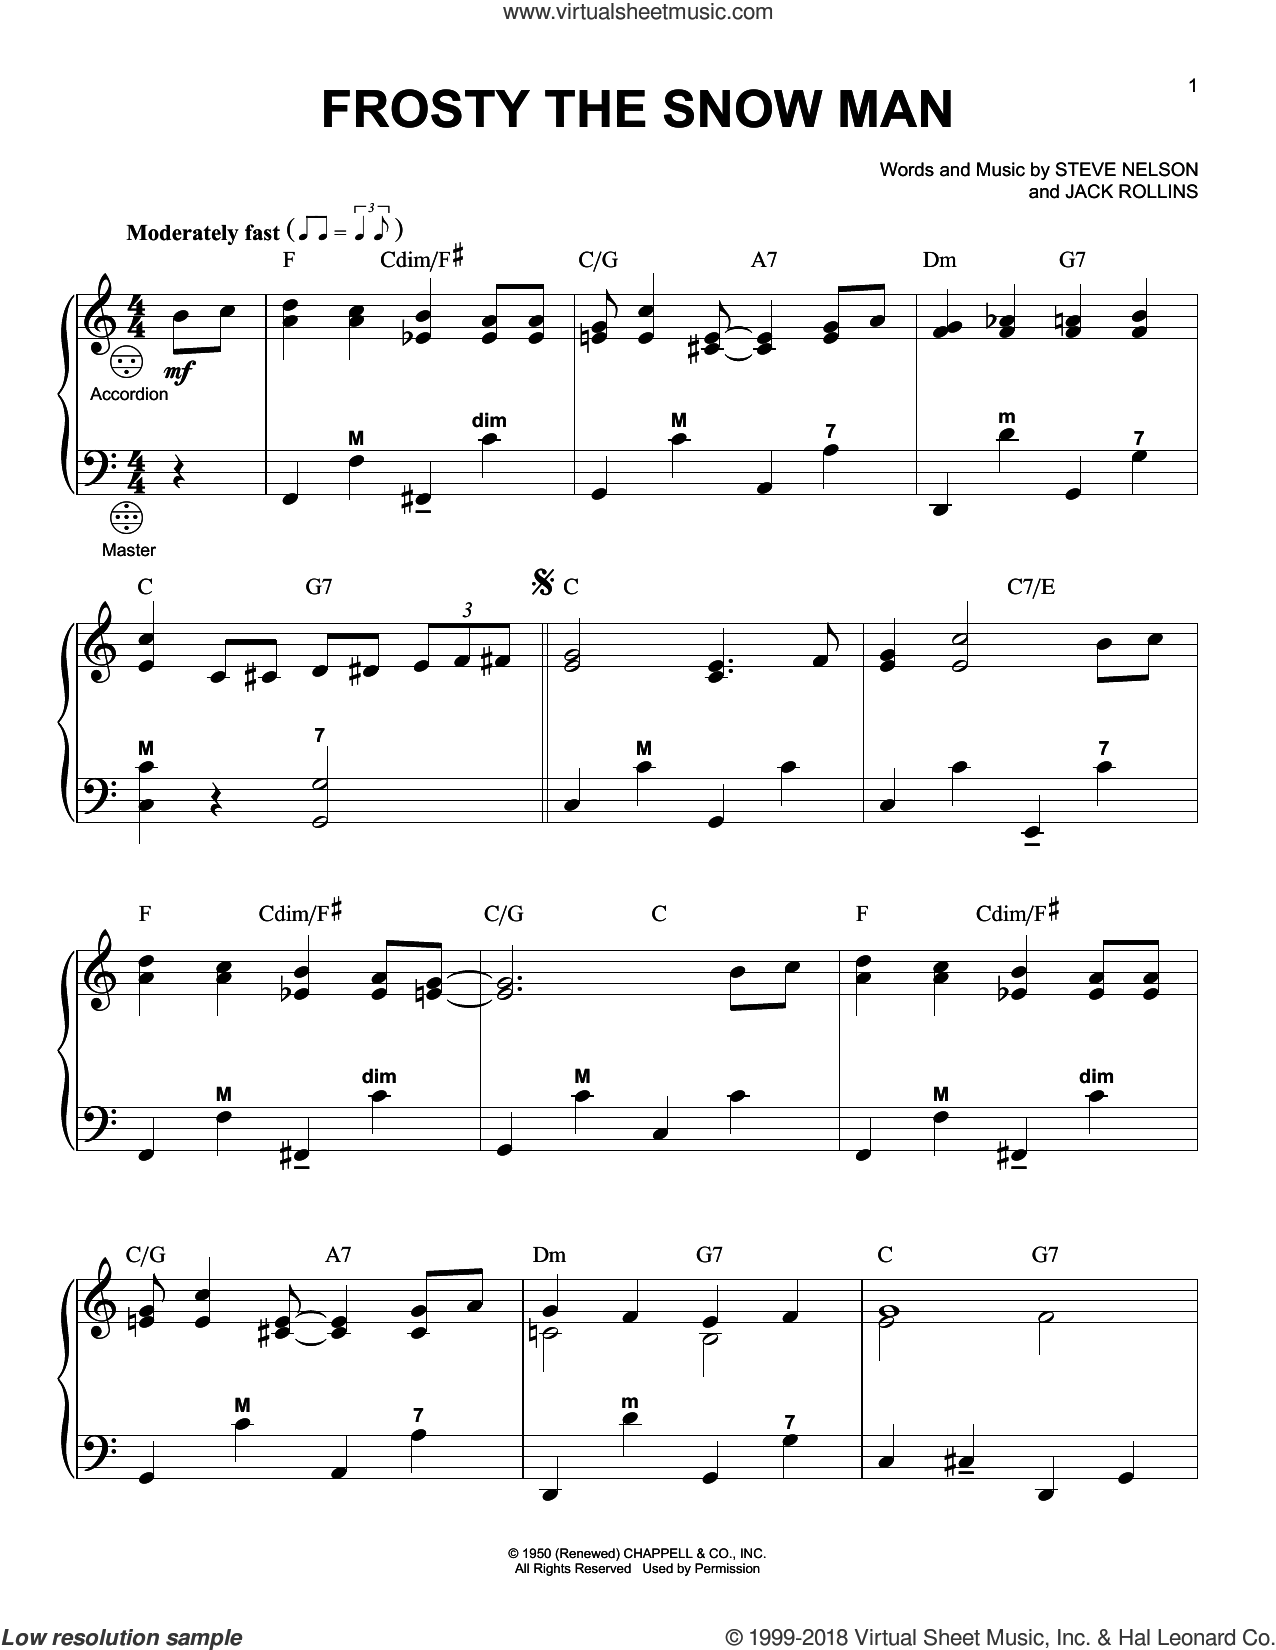 Frosty The Snow Man sheet music for accordion by Jack Rollins